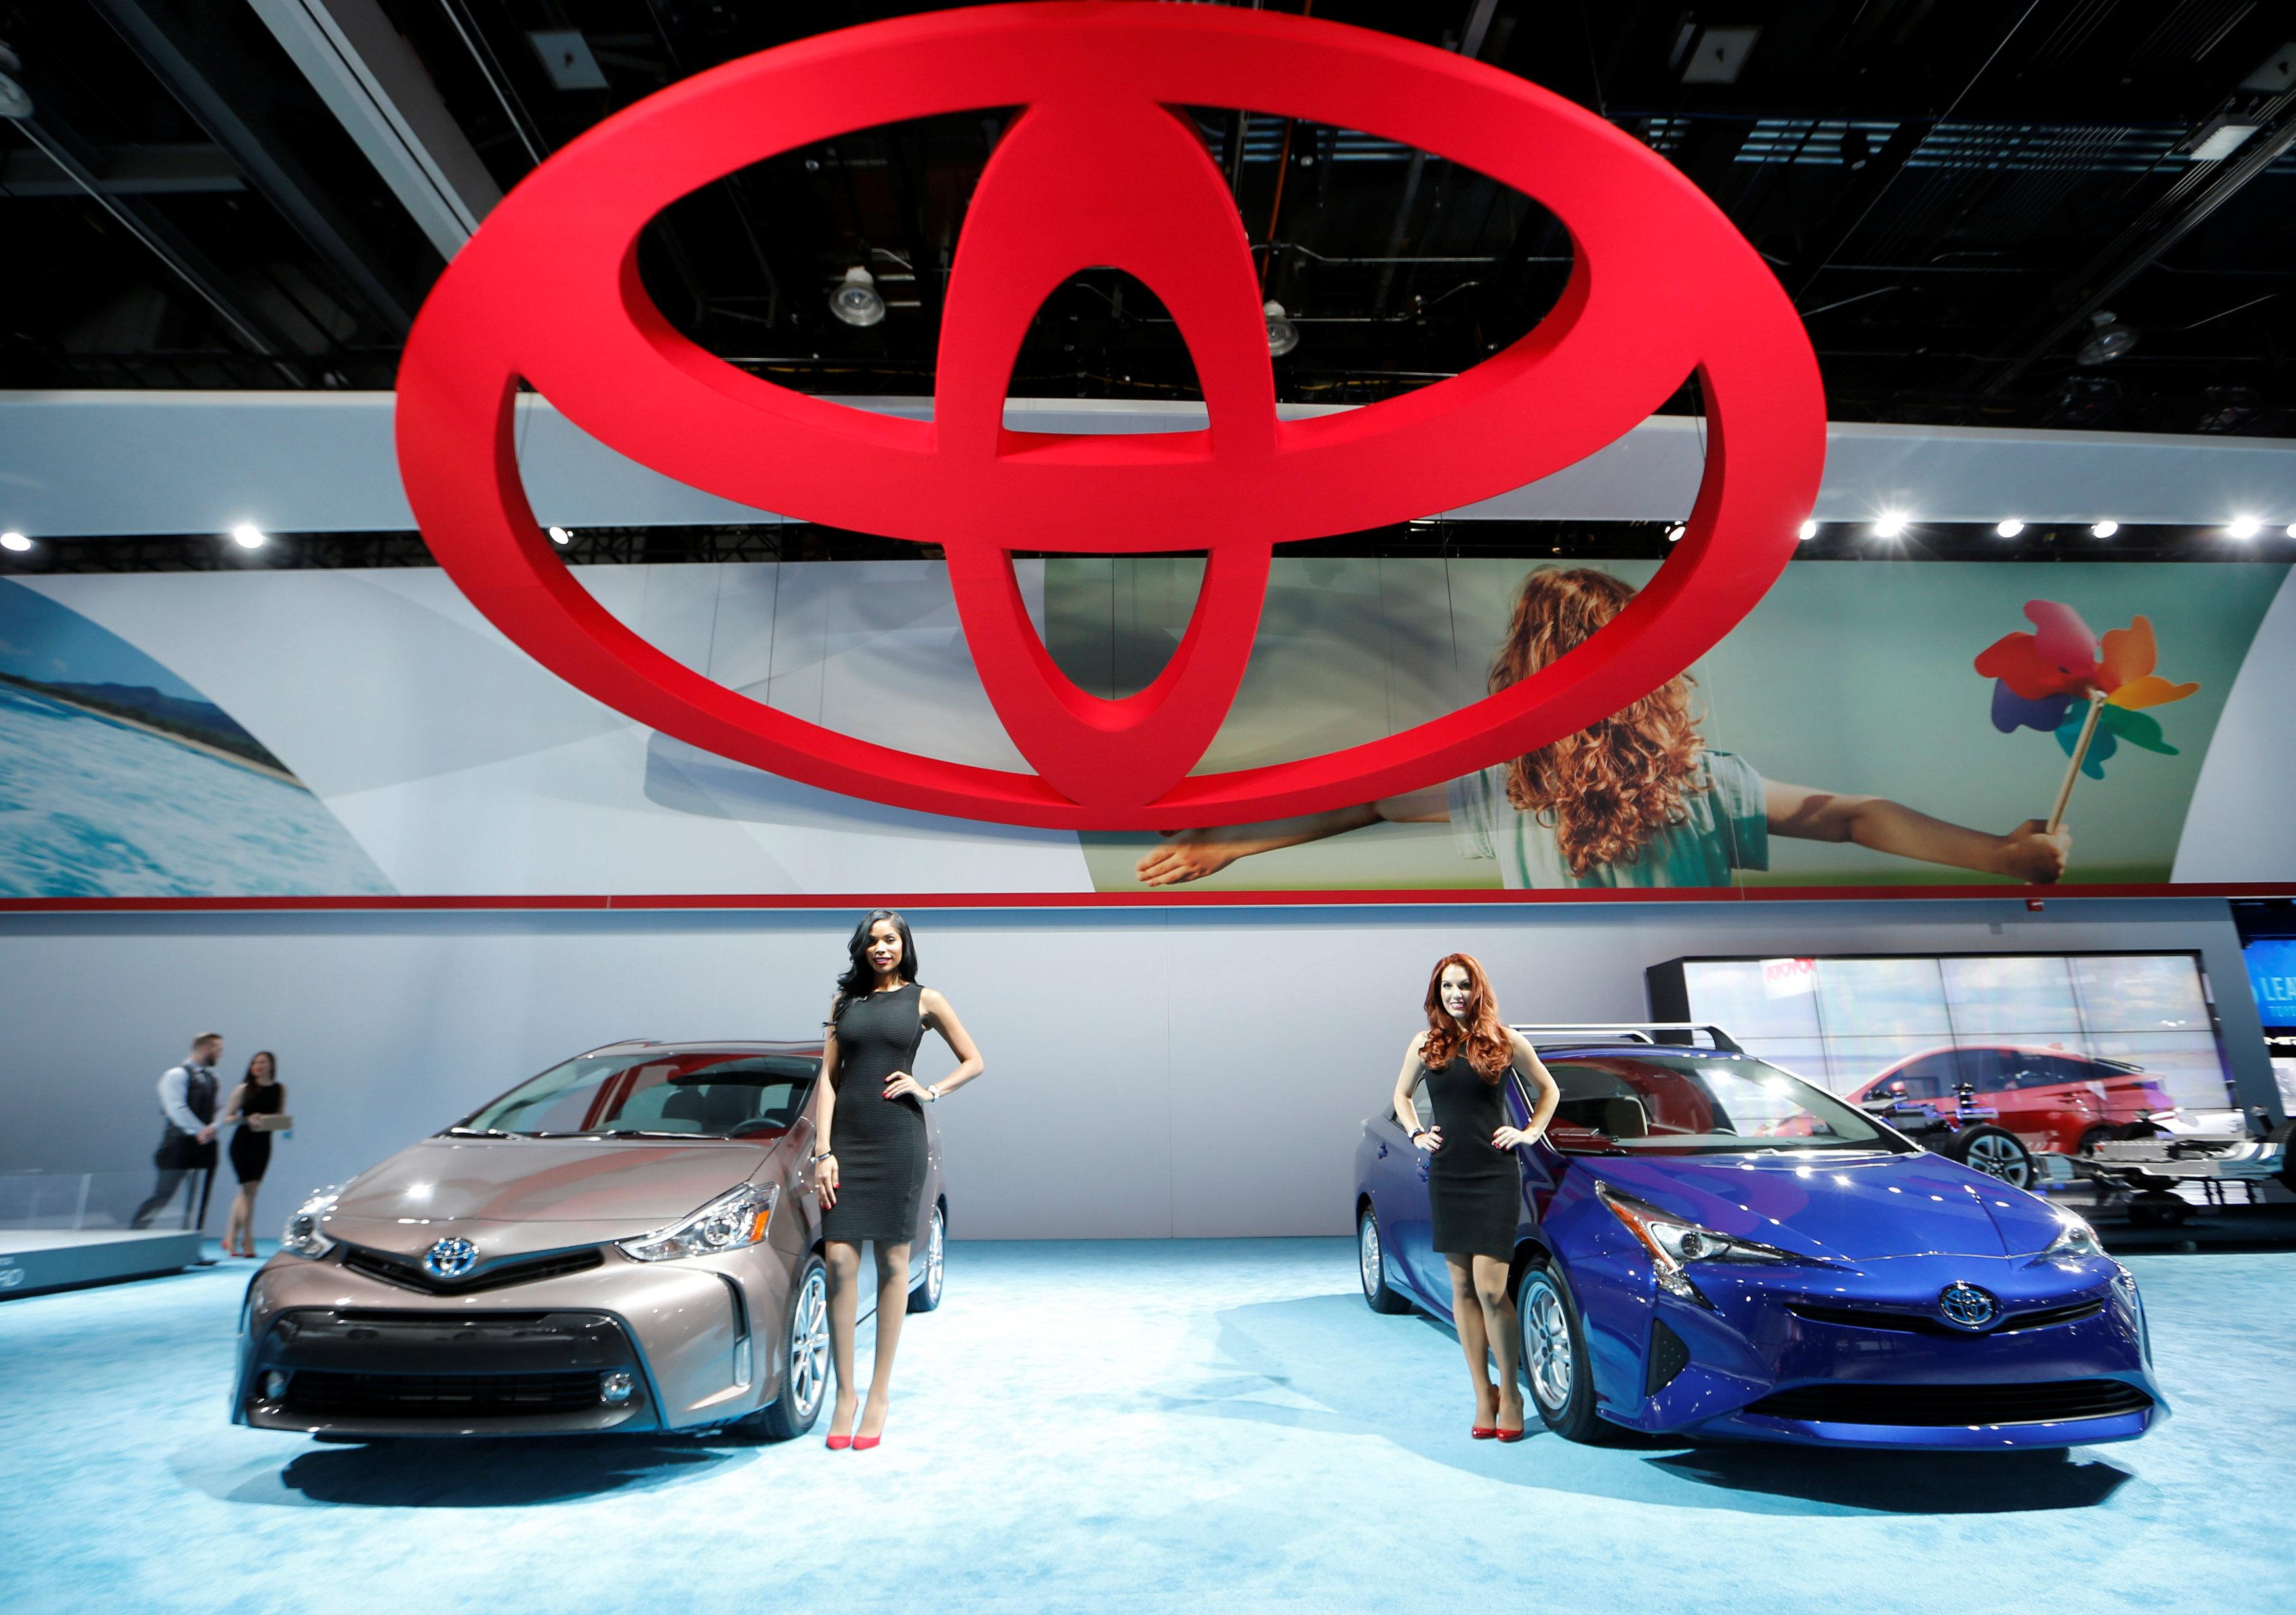 A Toyota Prius (R) and a Prius V are displayed at the North American International Auto Show in Detroit, January 12, 2016.   Mark Blinch